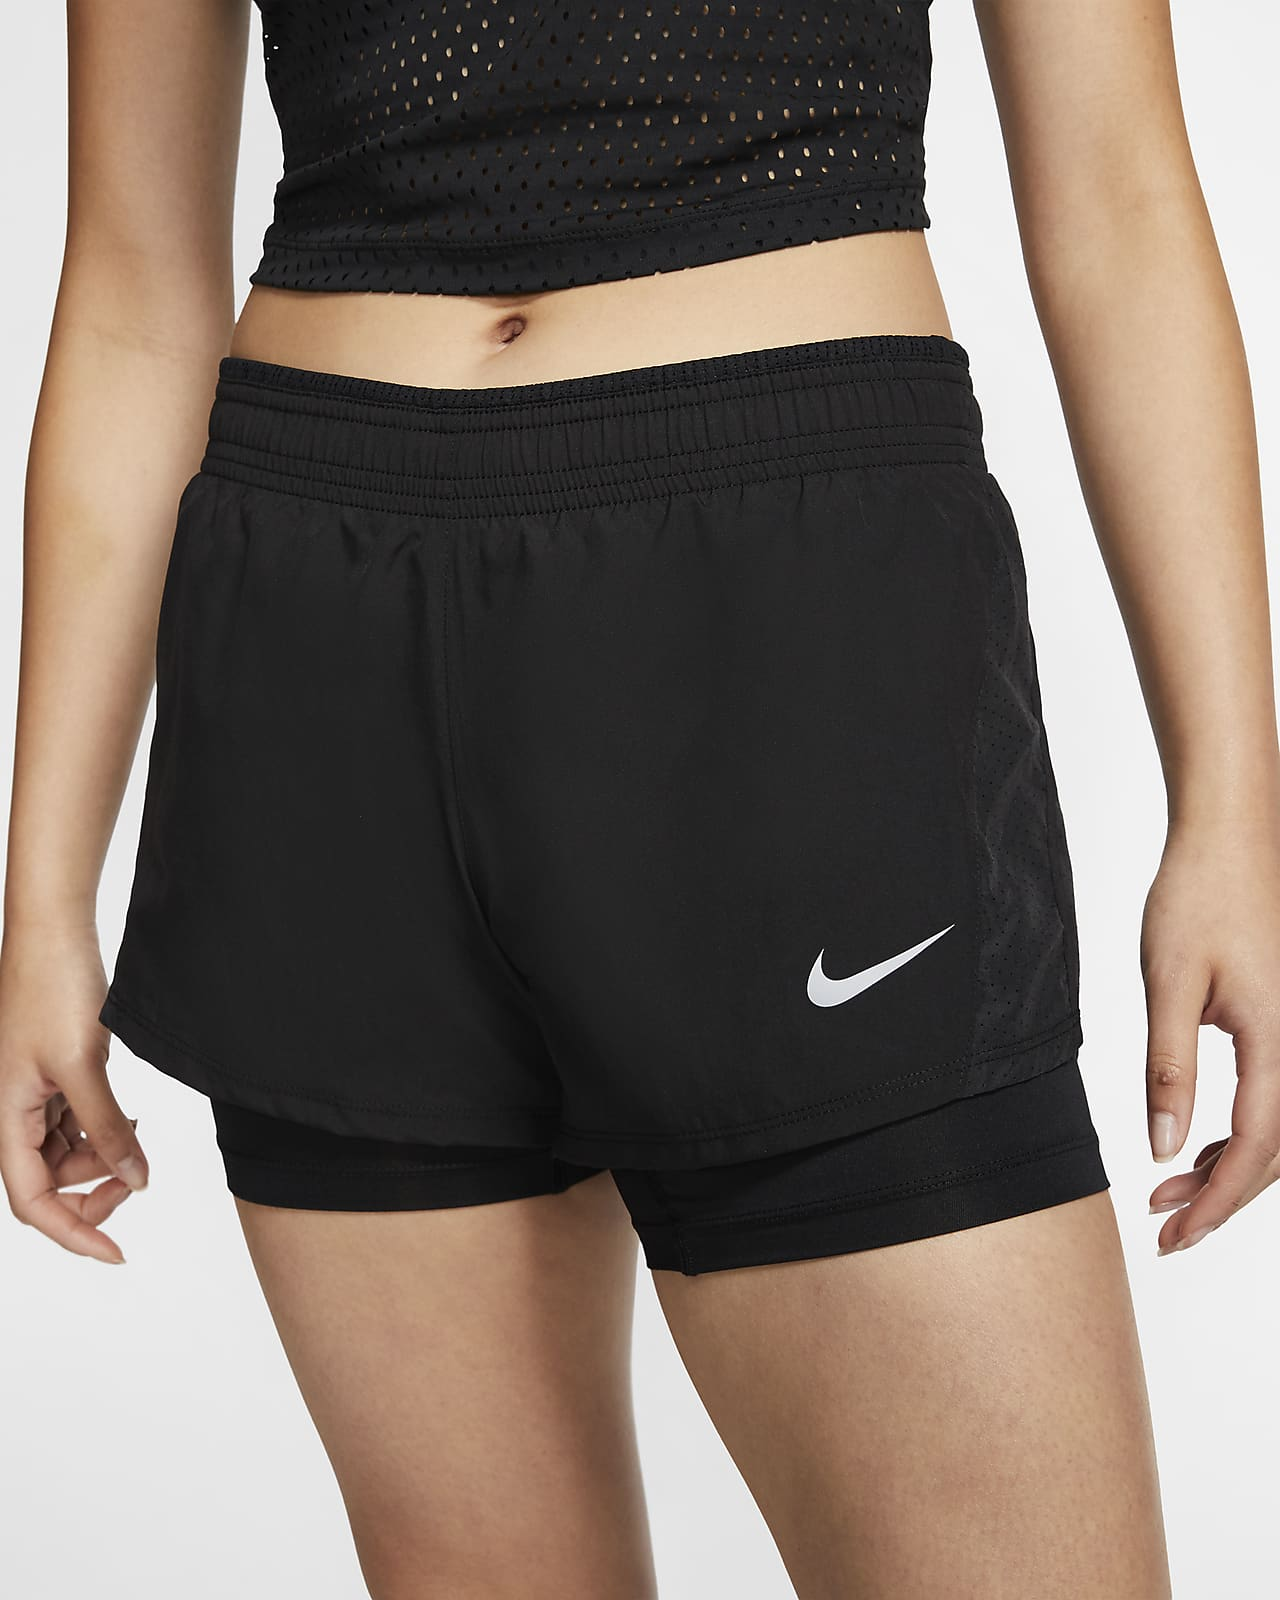 Nike Dri Fit Women S 2 In 1 Running Shorts Nike Id Also set sale alerts and shop exclusive offers only on shopstyle. nike dri fit women s 2 in 1 running shorts